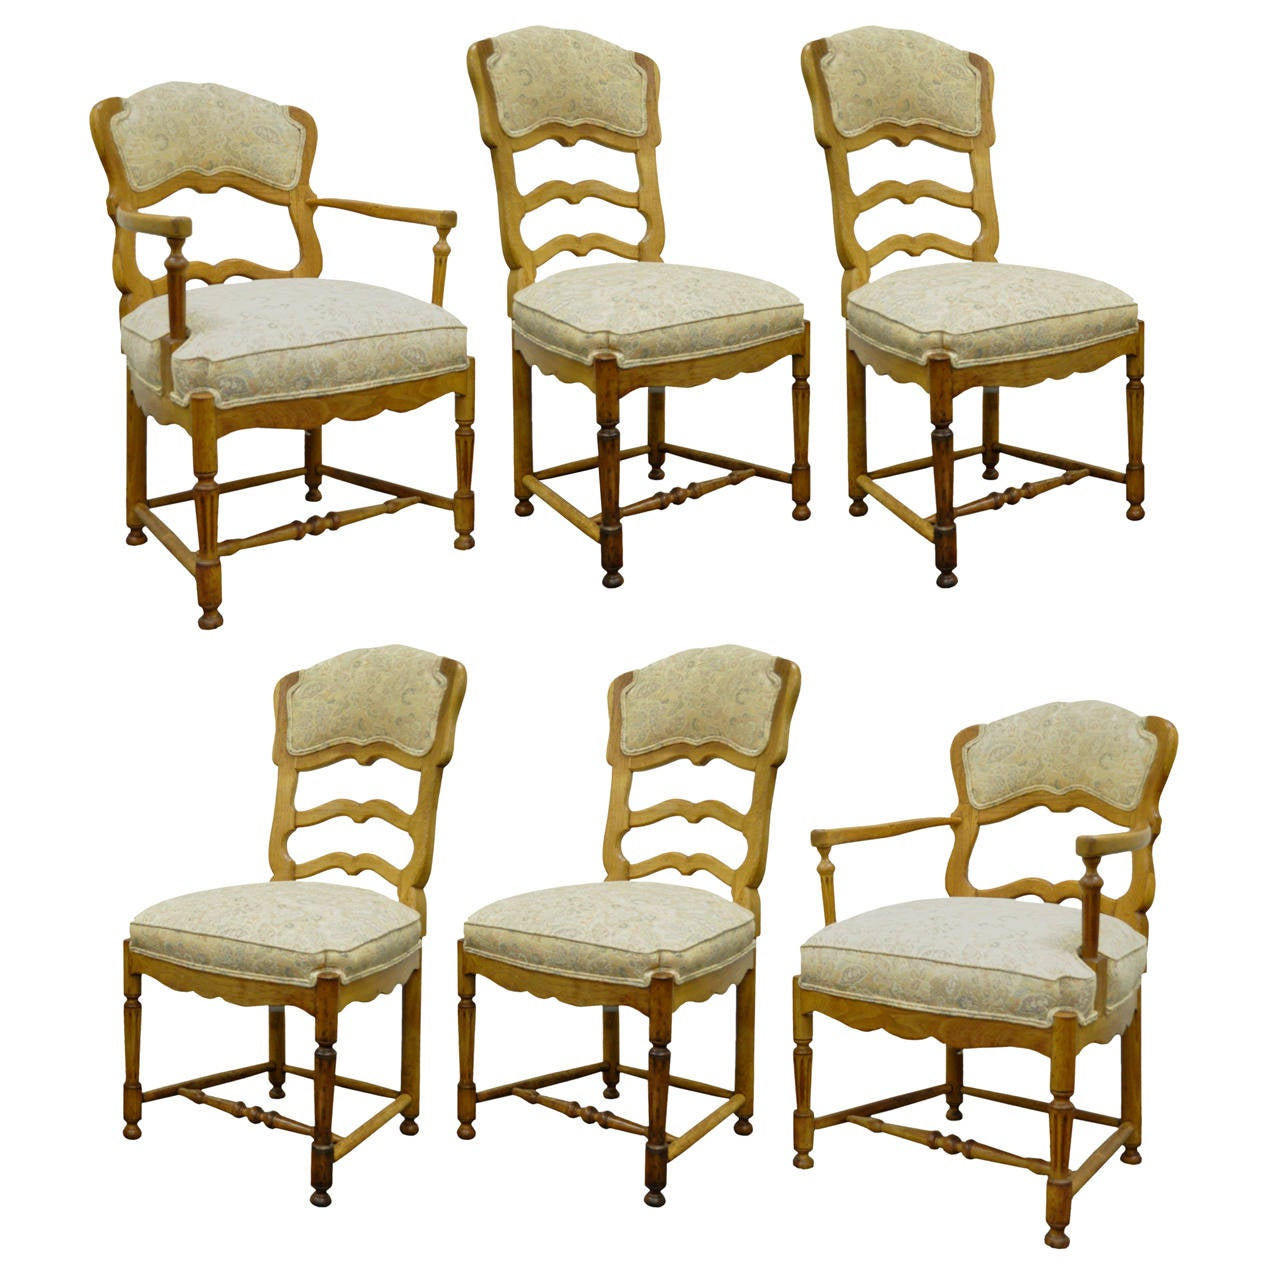 french country dining chairs with arms ikea chair covers borje six style carved and upholstered ladder